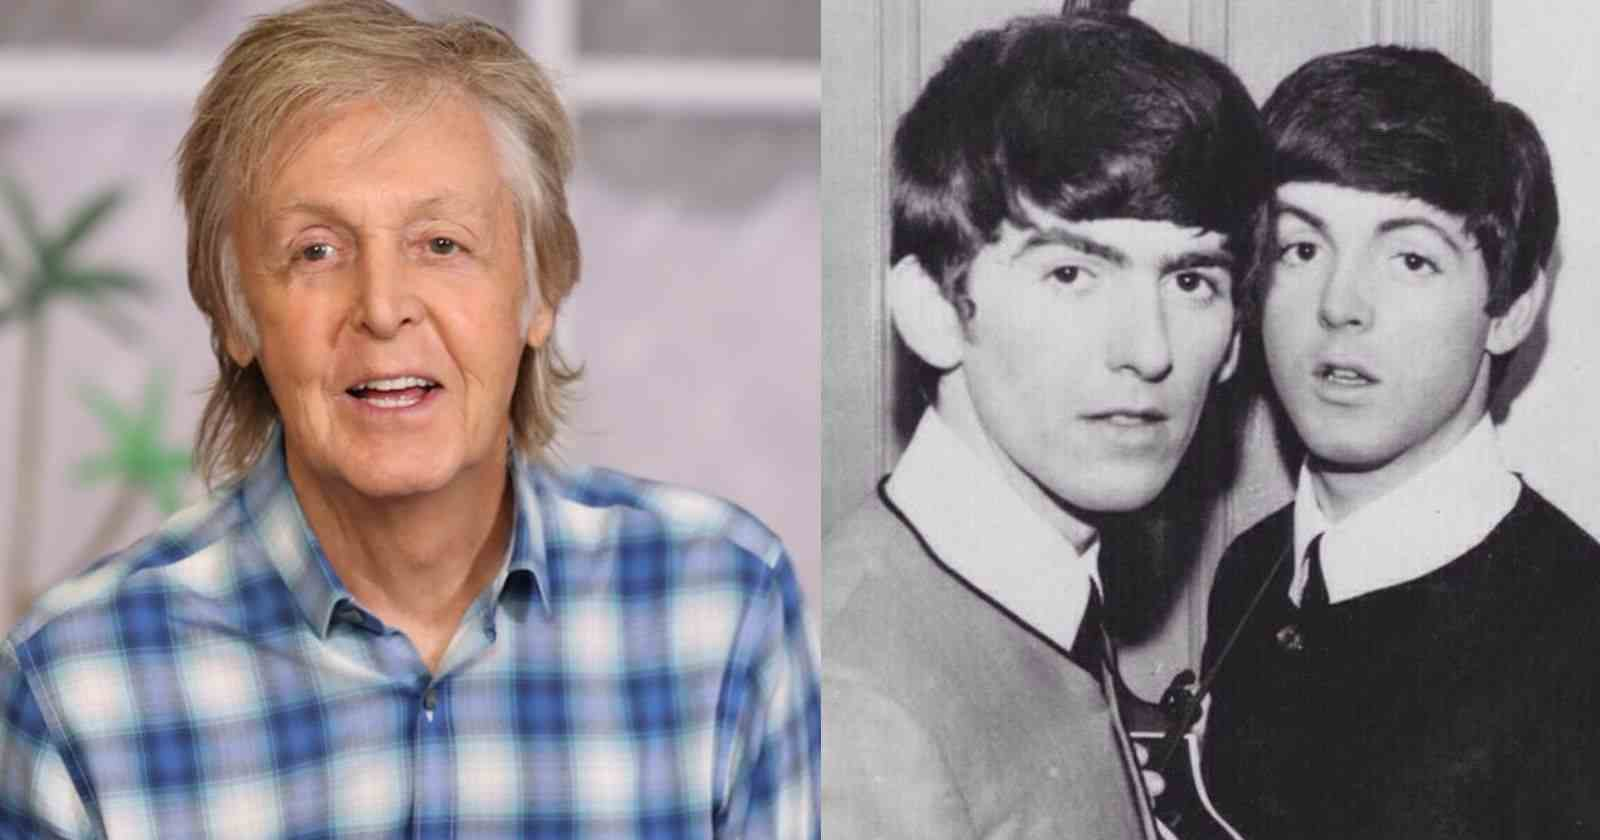 Paul McCartney George harrison